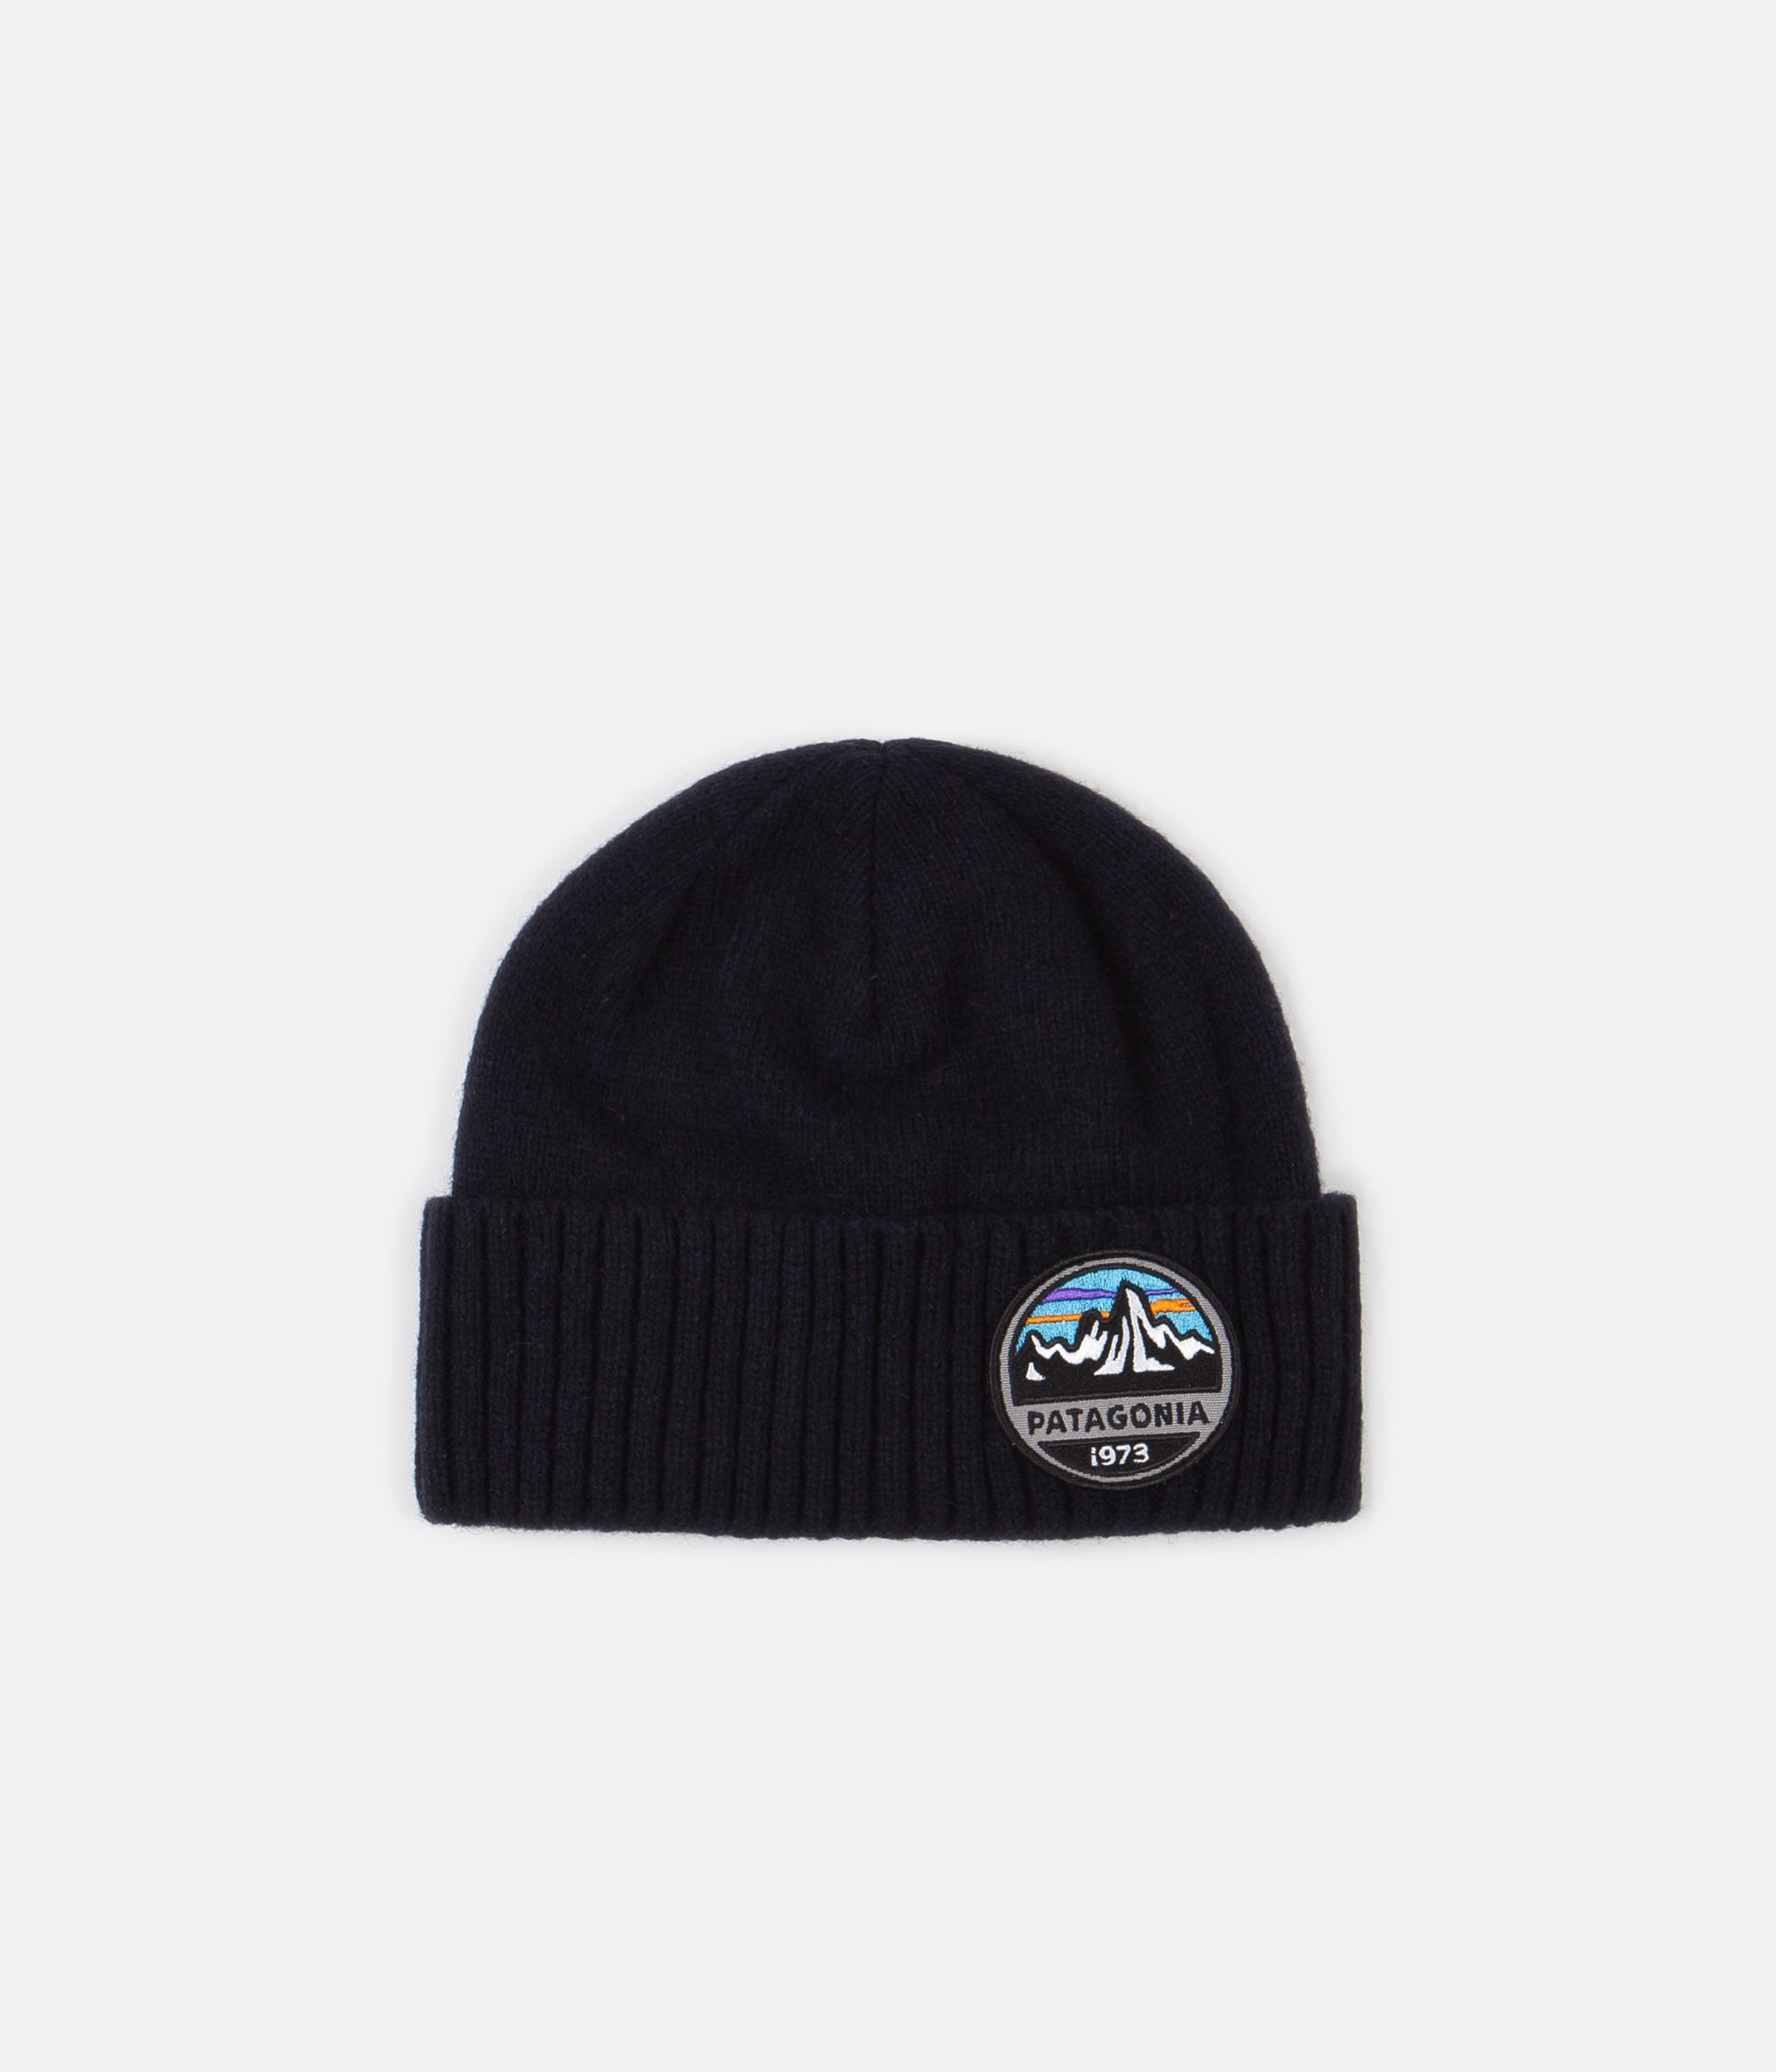 Patagonia Brodeo Beanie - Fitz Roy Scope: Navy Blue